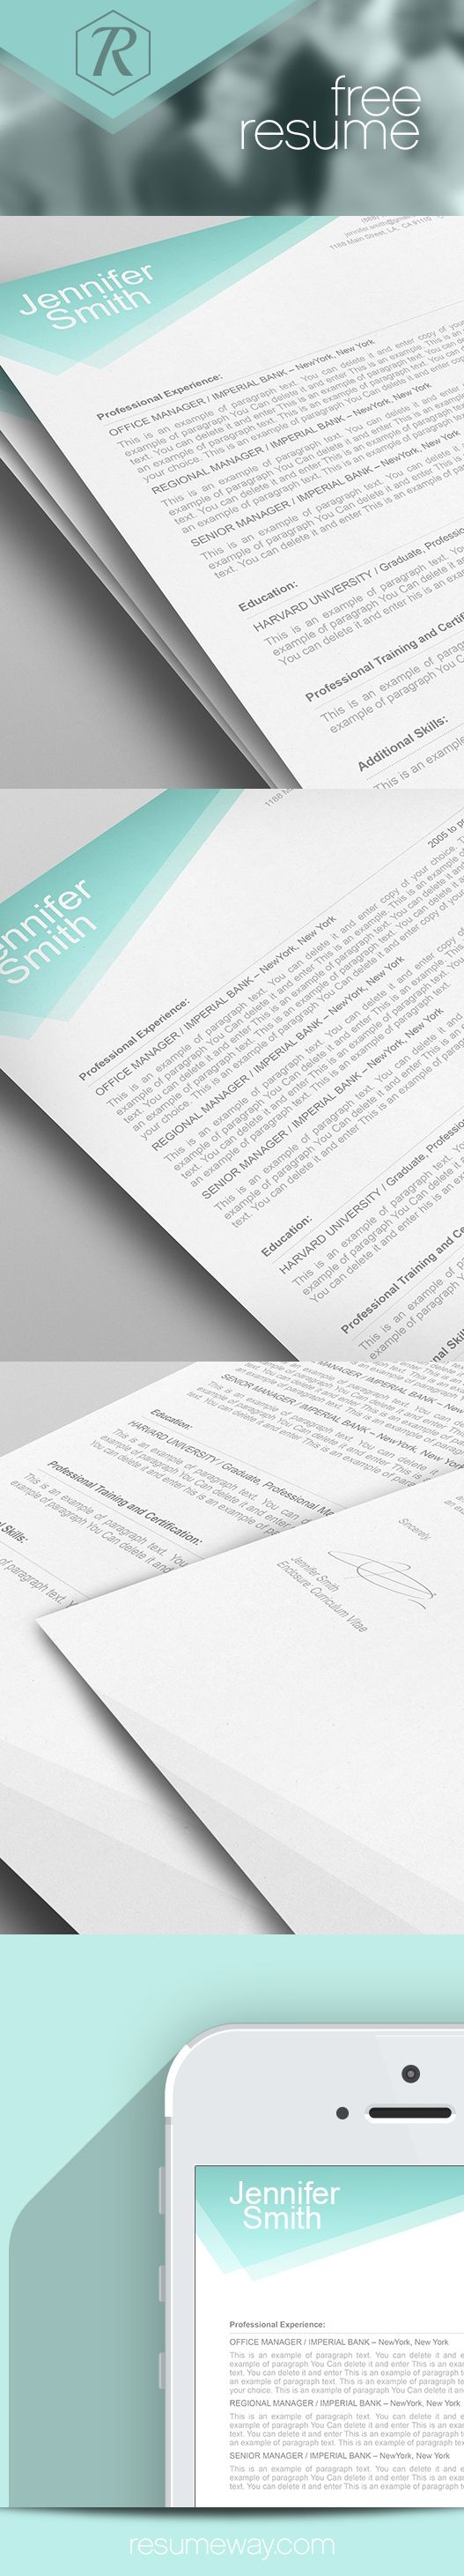 free resume template 1100020 premium line of resume cover letter templates edit with